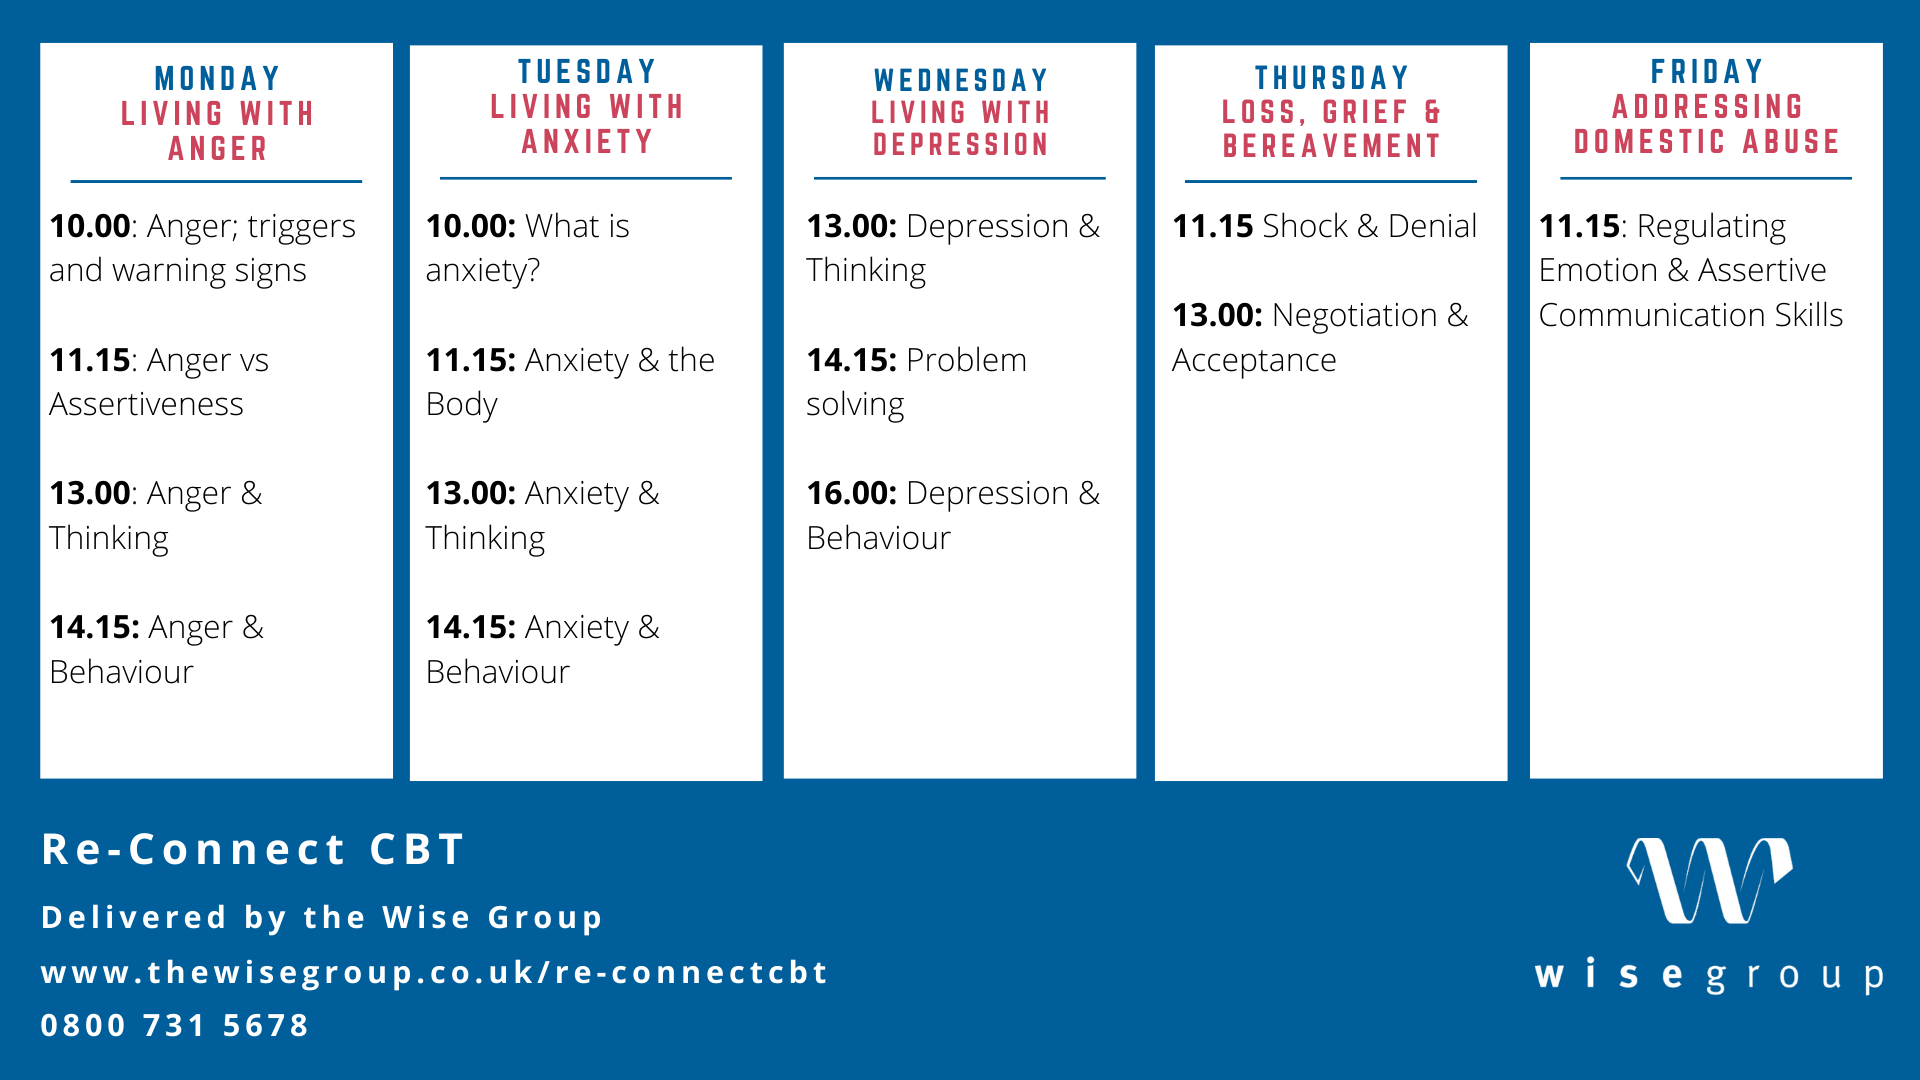 Re-Connect CBT weekly timetable